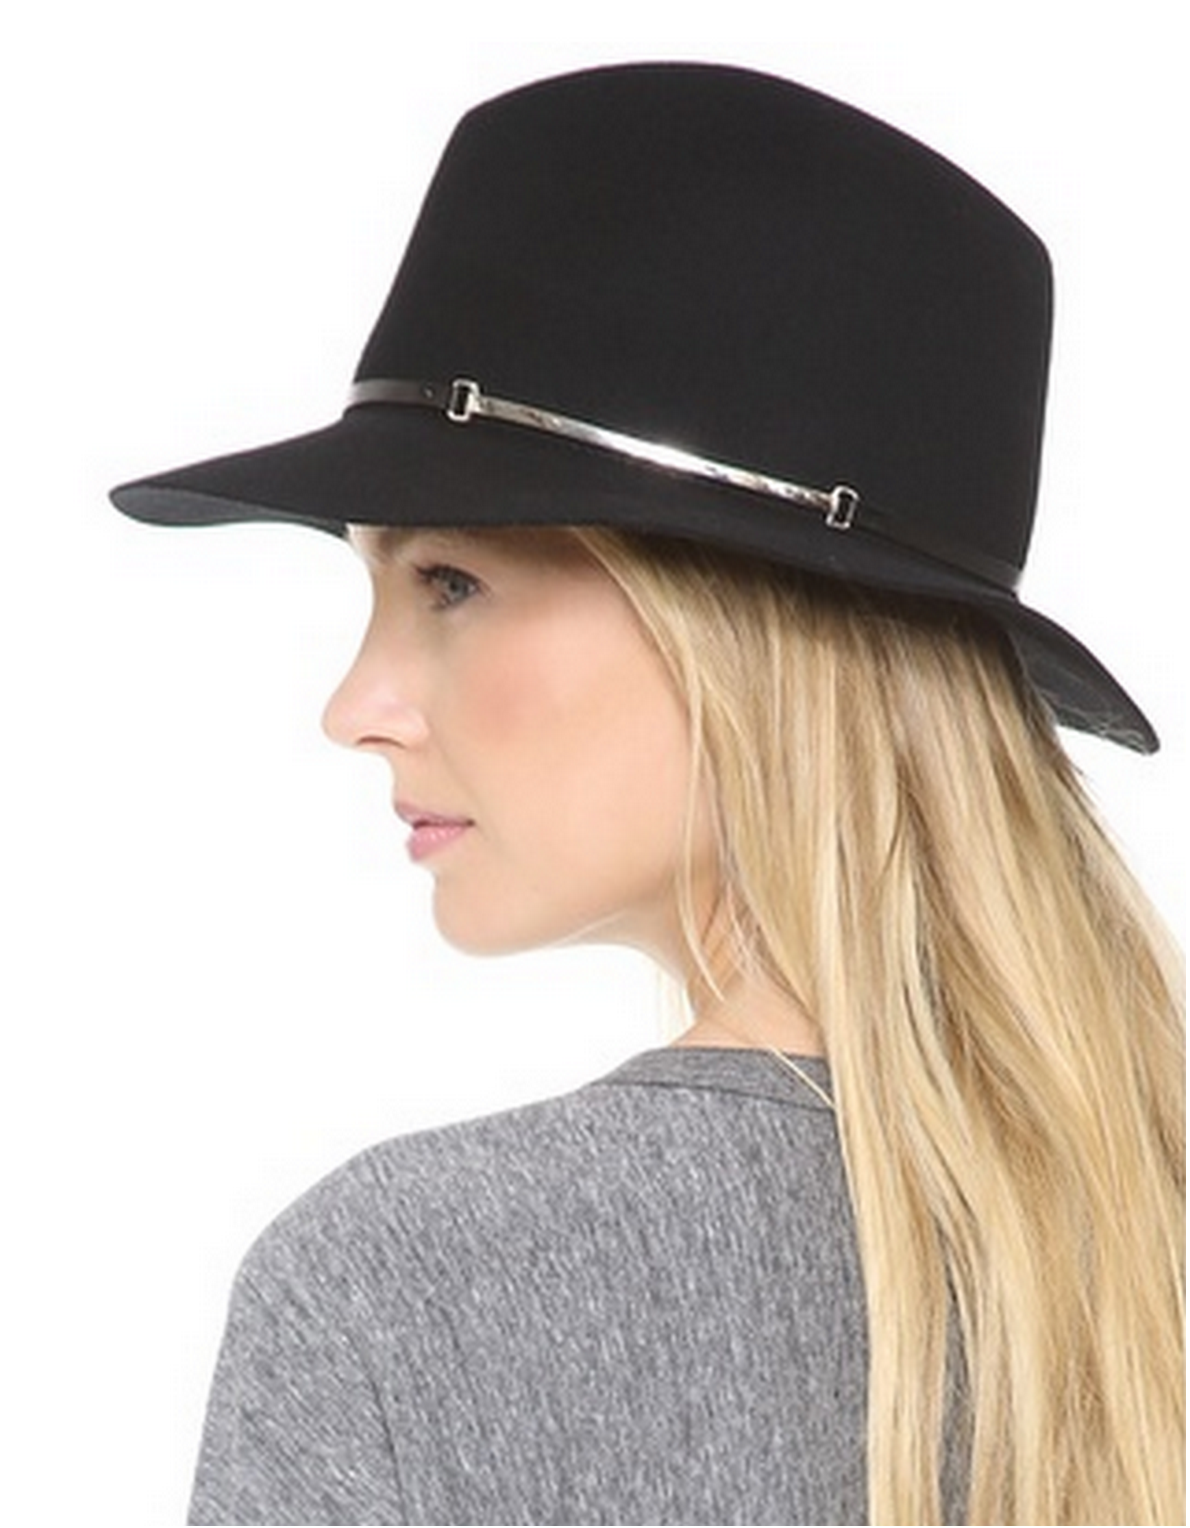 Hats: Where to Get Them and How to Wear Them